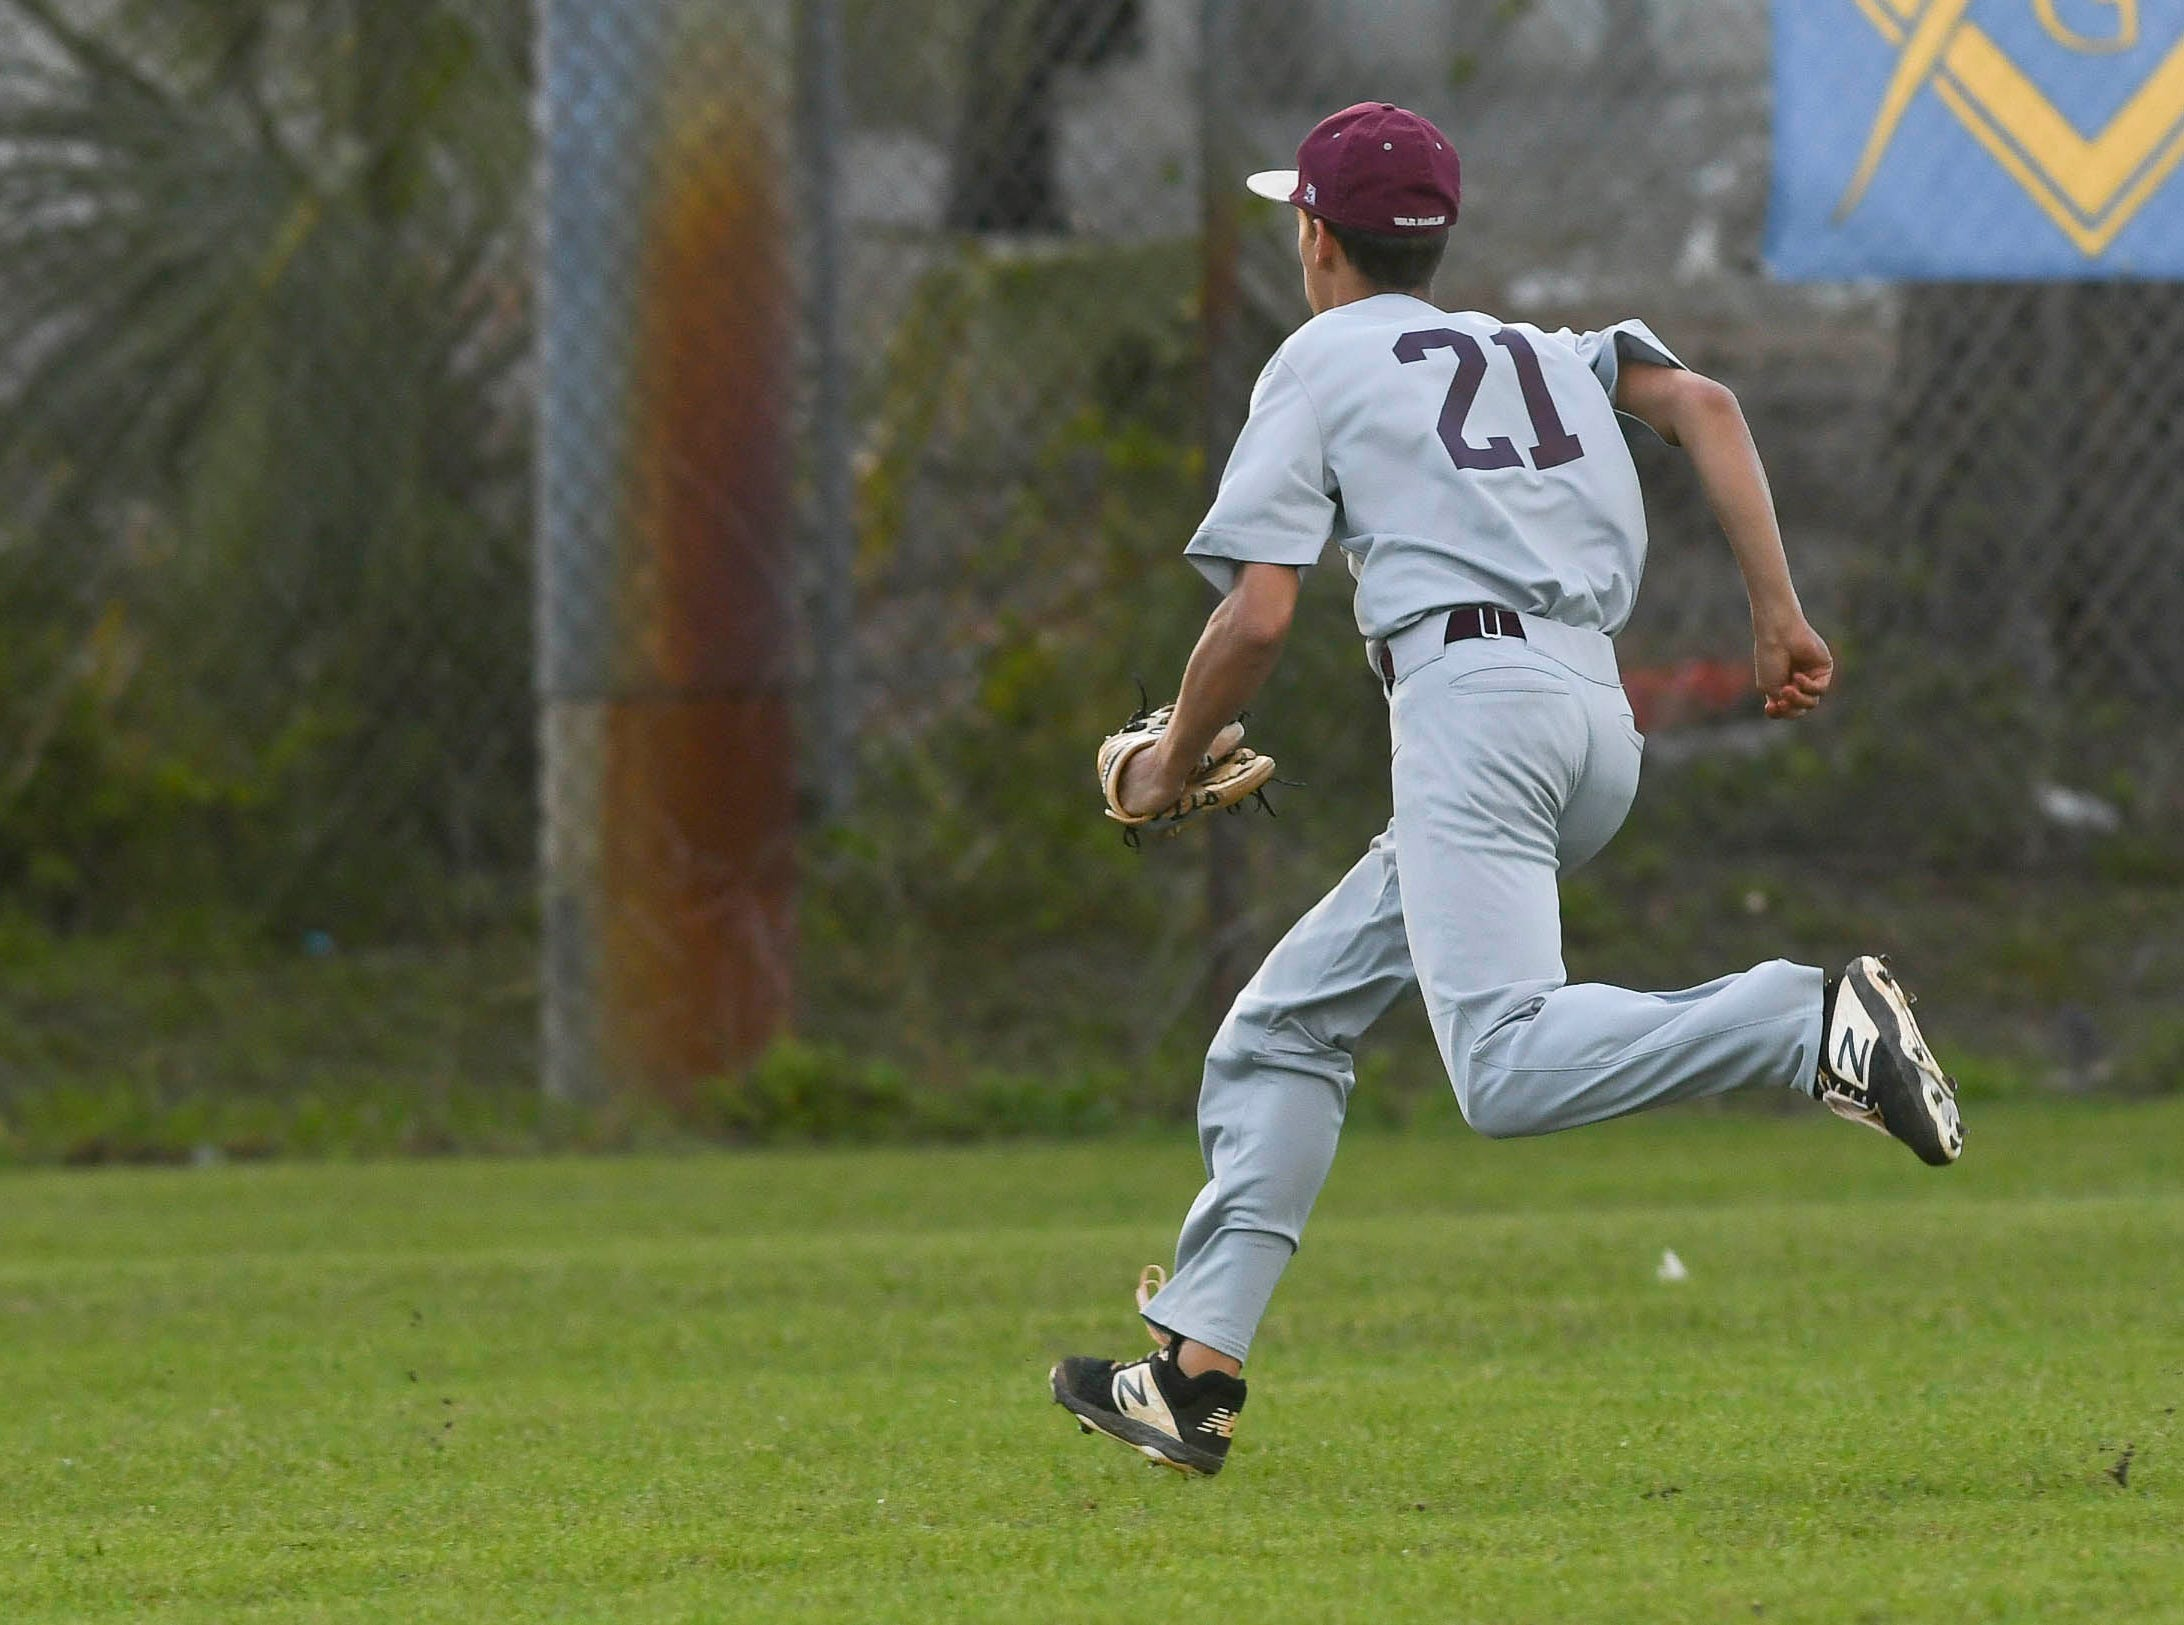 Austin Roberts of Astronaut chases a ball in the outfield during Thursday's game against  Titusville.